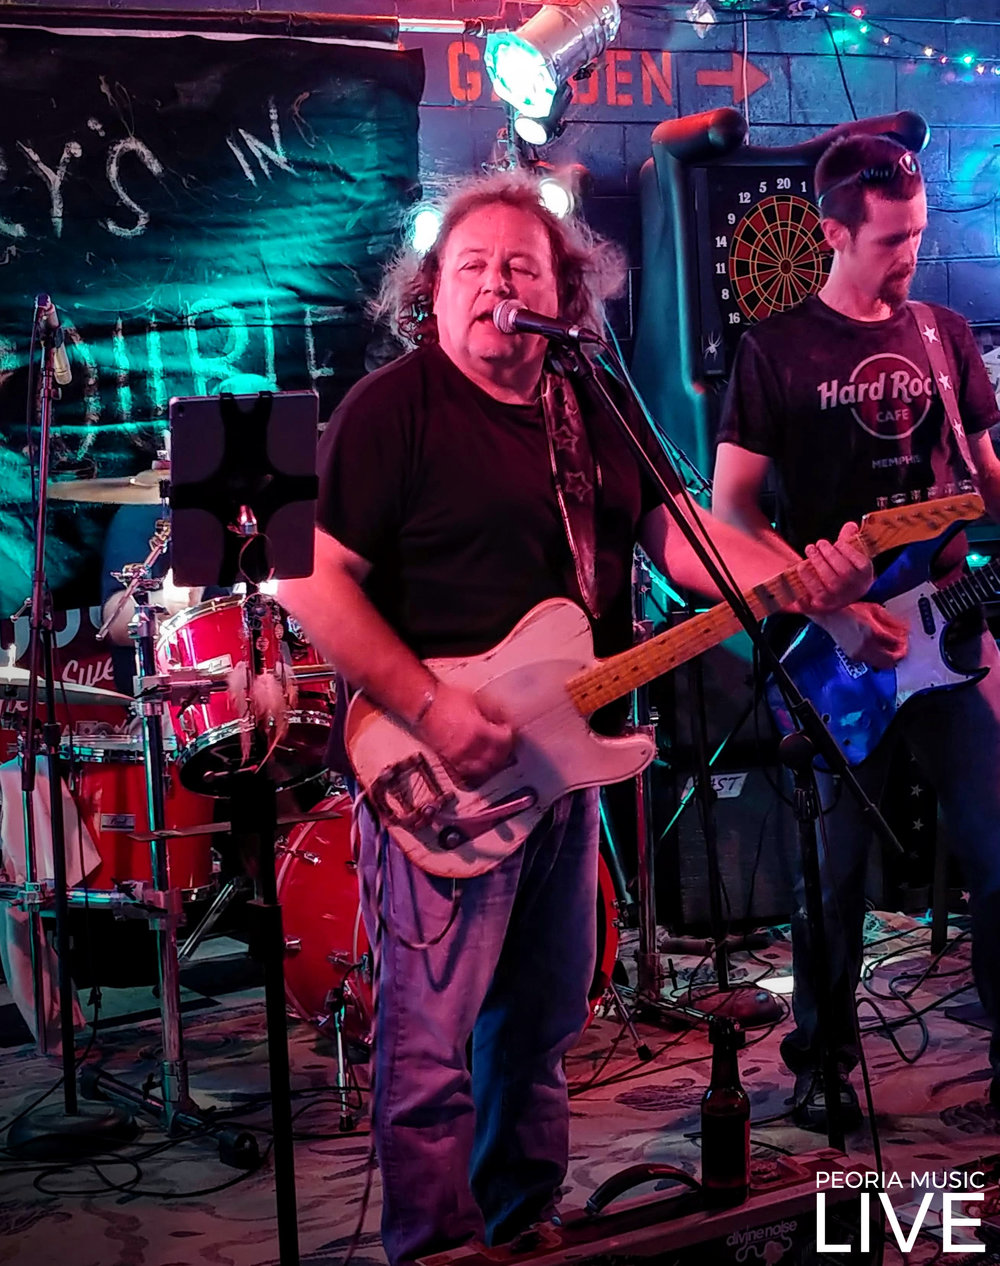 Brian Larson & Shawn Shawn Soens of Gary's in Trouble. Photo taken at Christy's Place in Washington, Aug 25, 2018